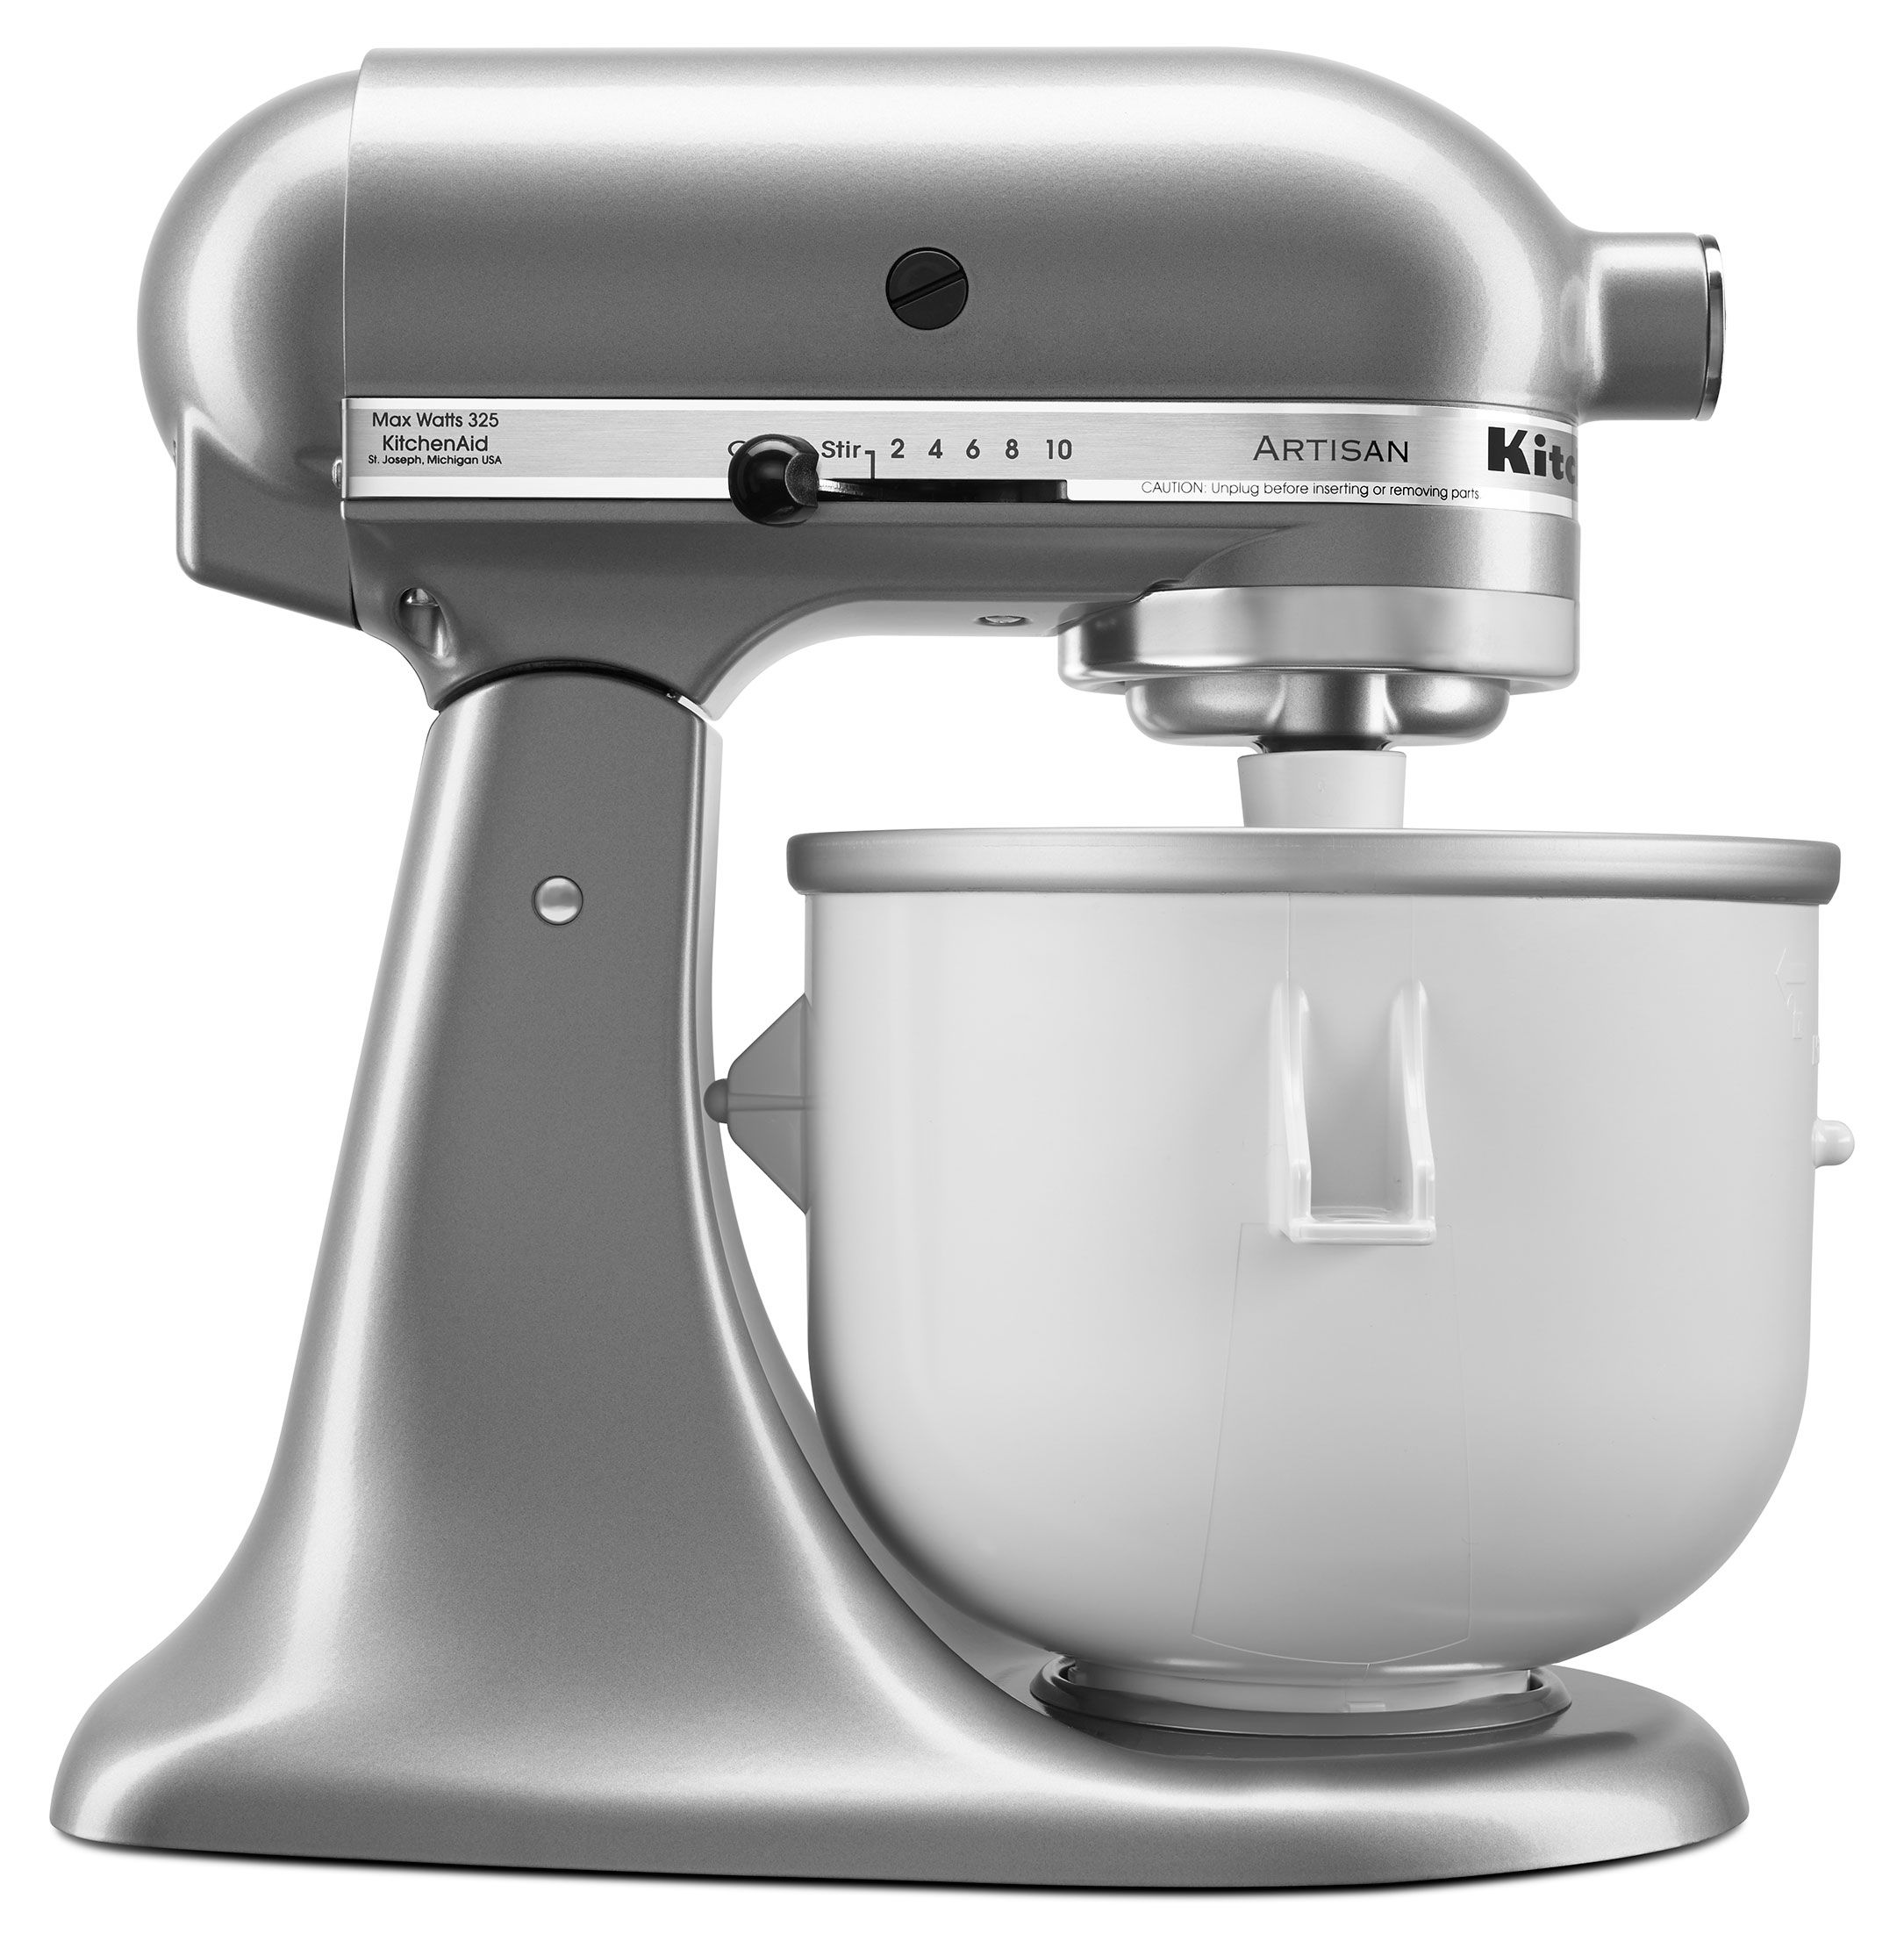 The Best Ice Cream Makers On The Market No Matter Your Budget Kitchenaid Ice Cream Maker Ice Cream Maker Best Ice Cream Maker